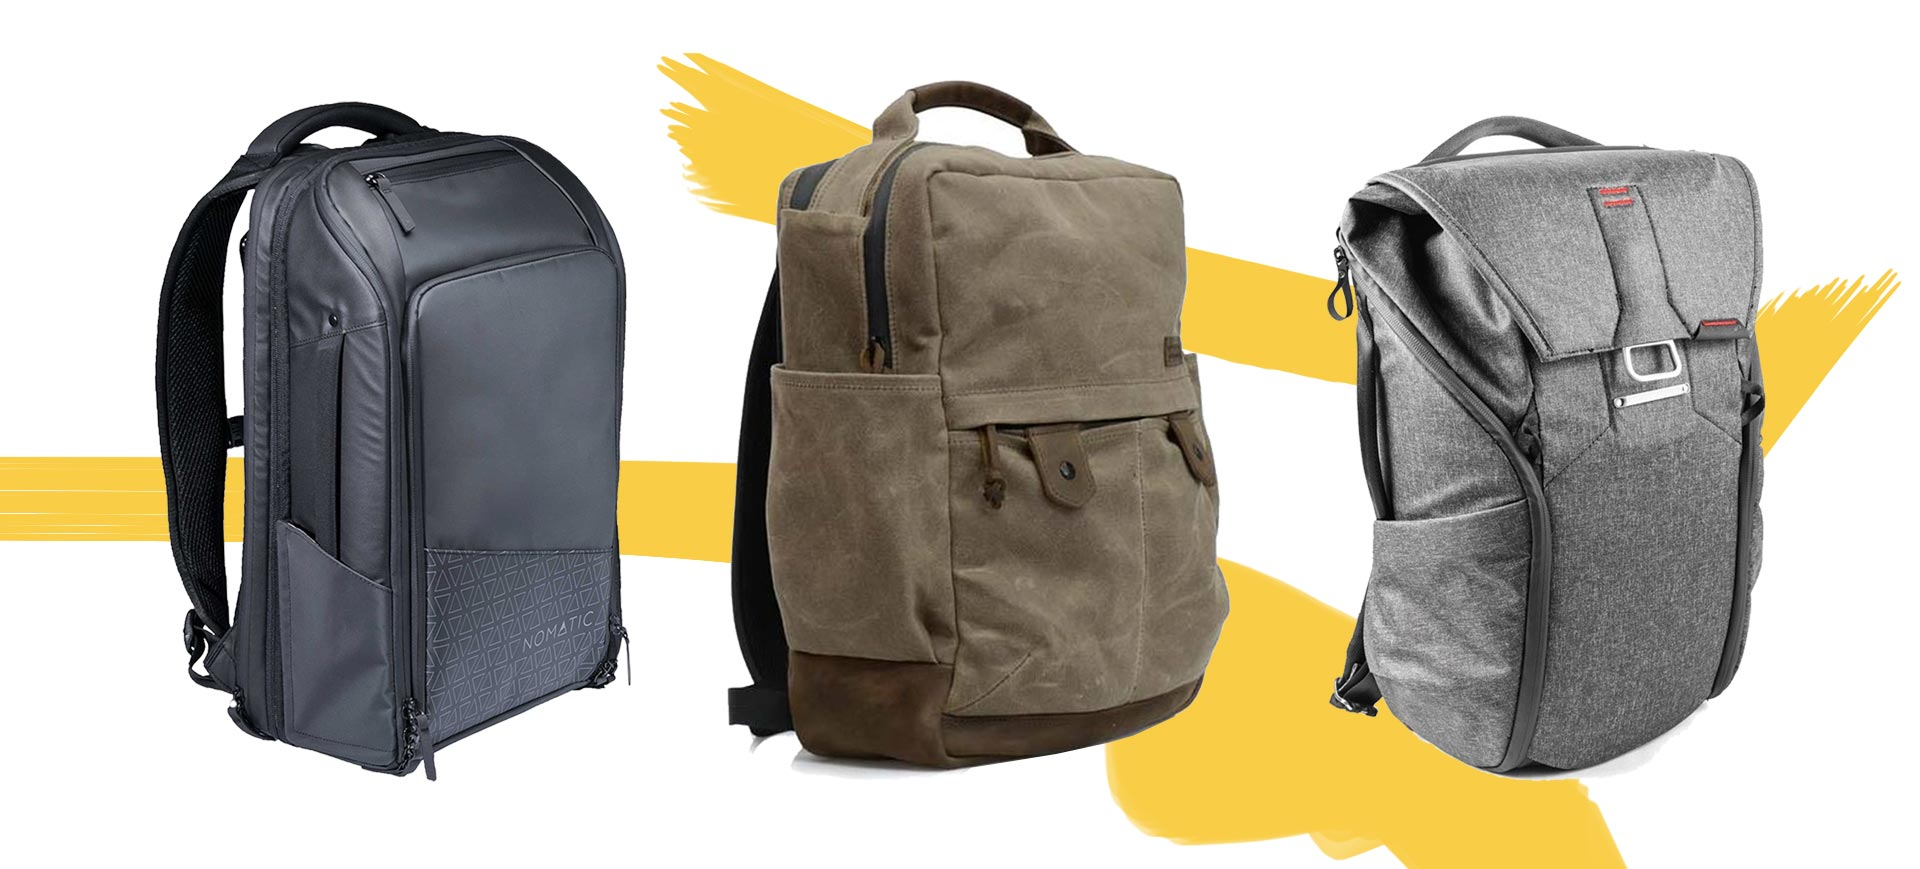 The Best Daily Carry Bags